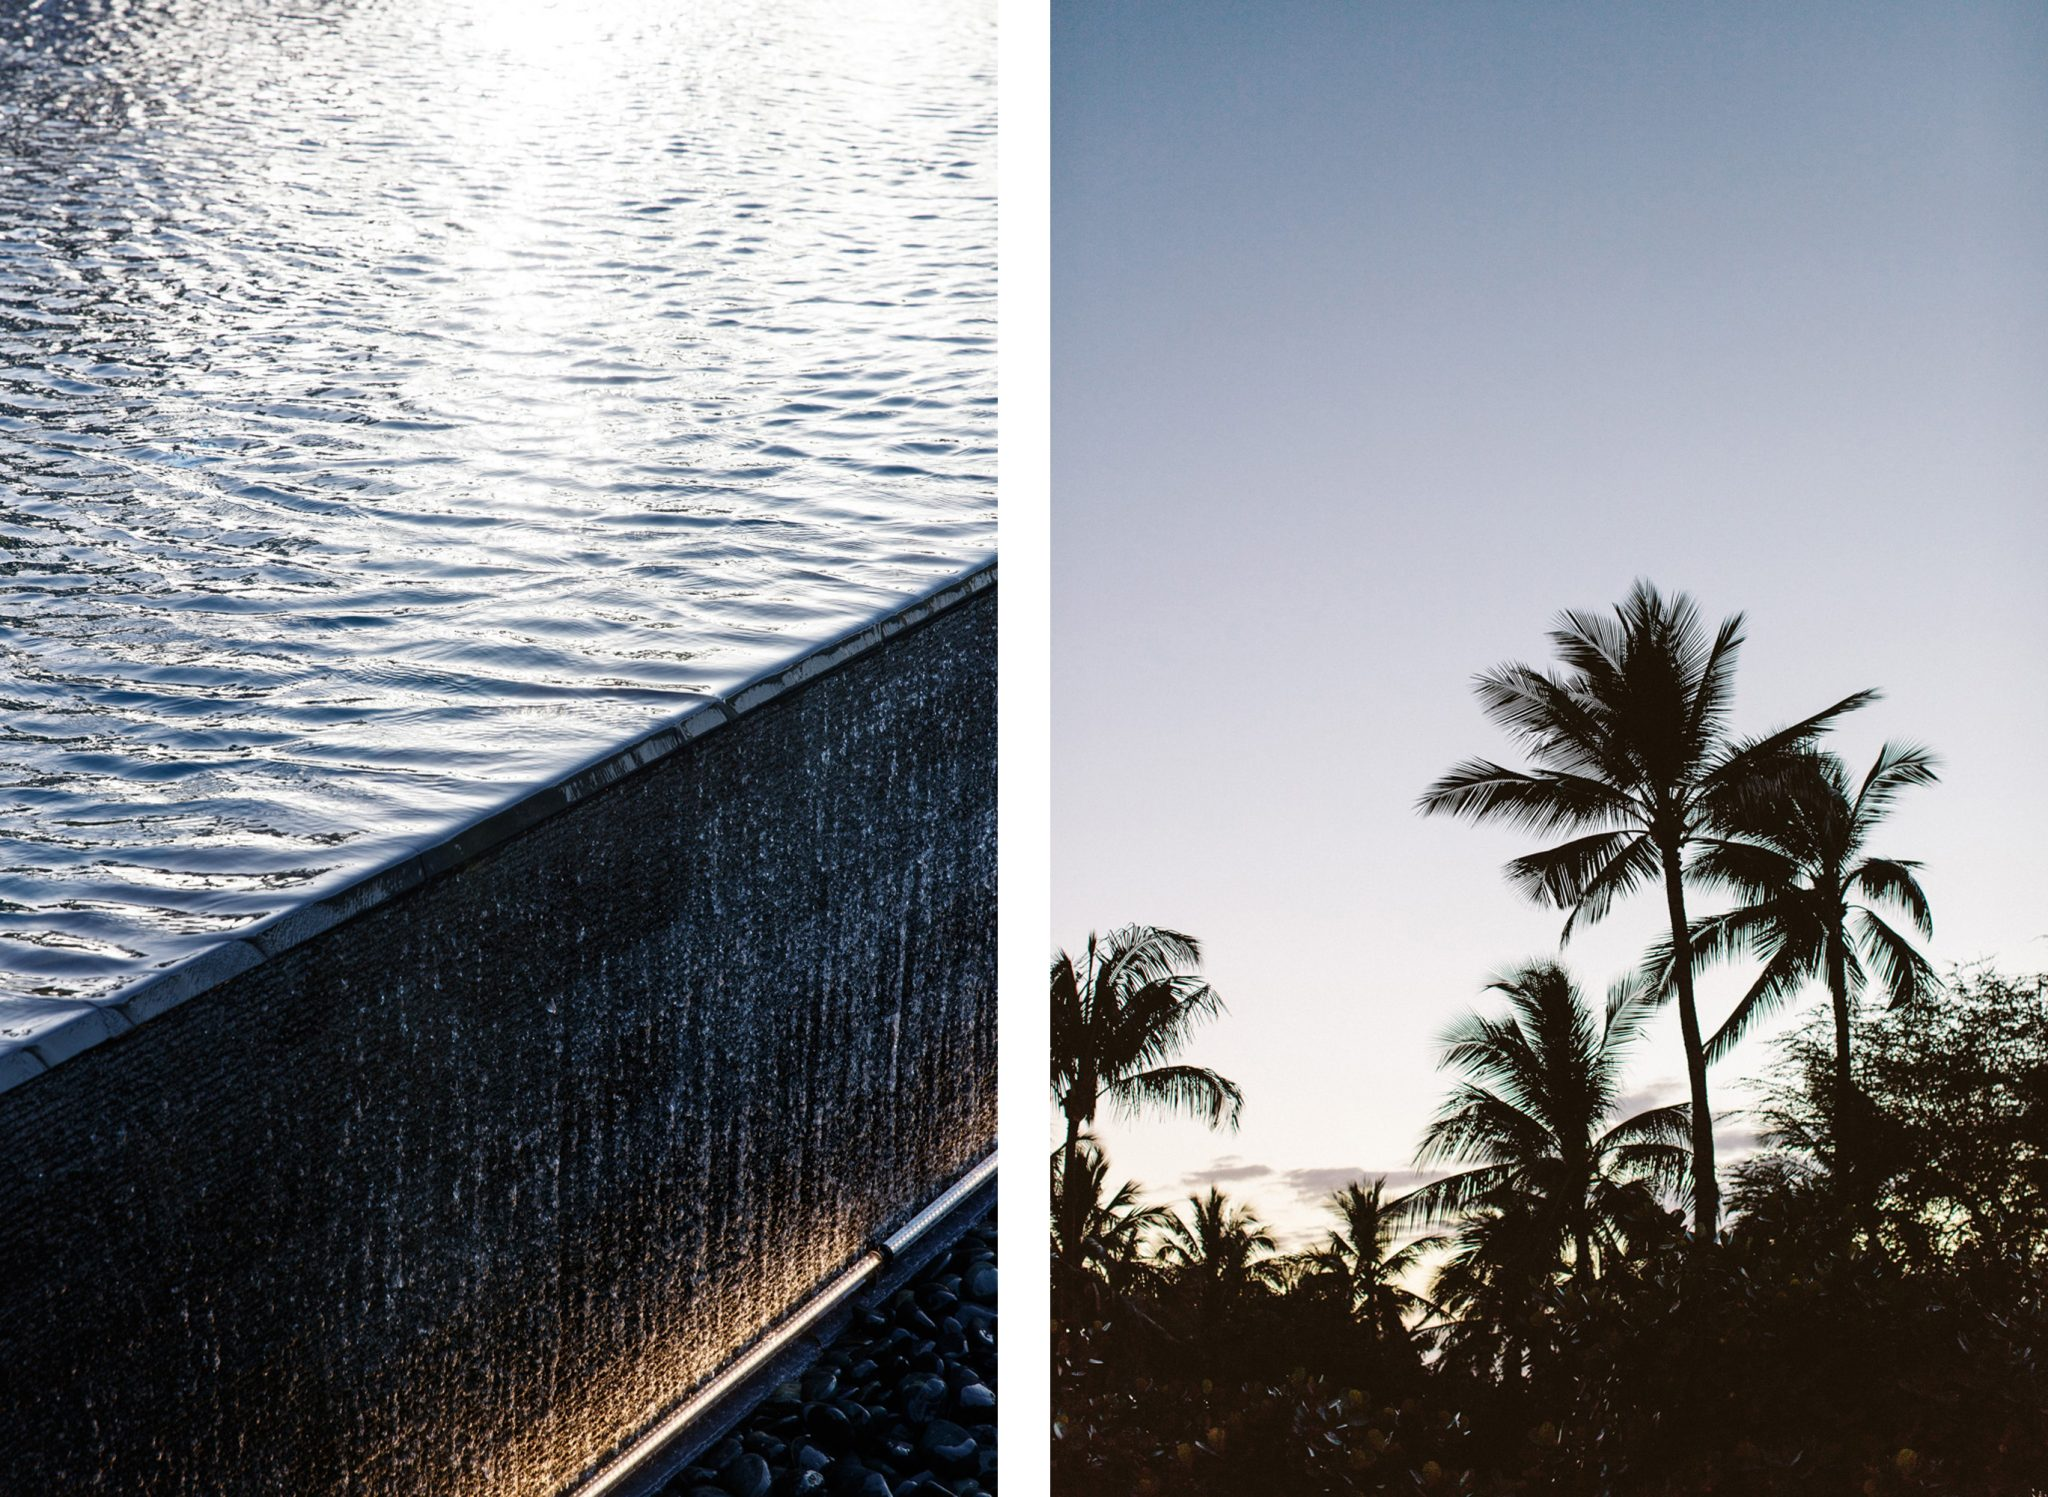 Oahu infinity pool, palm trees evening comparison